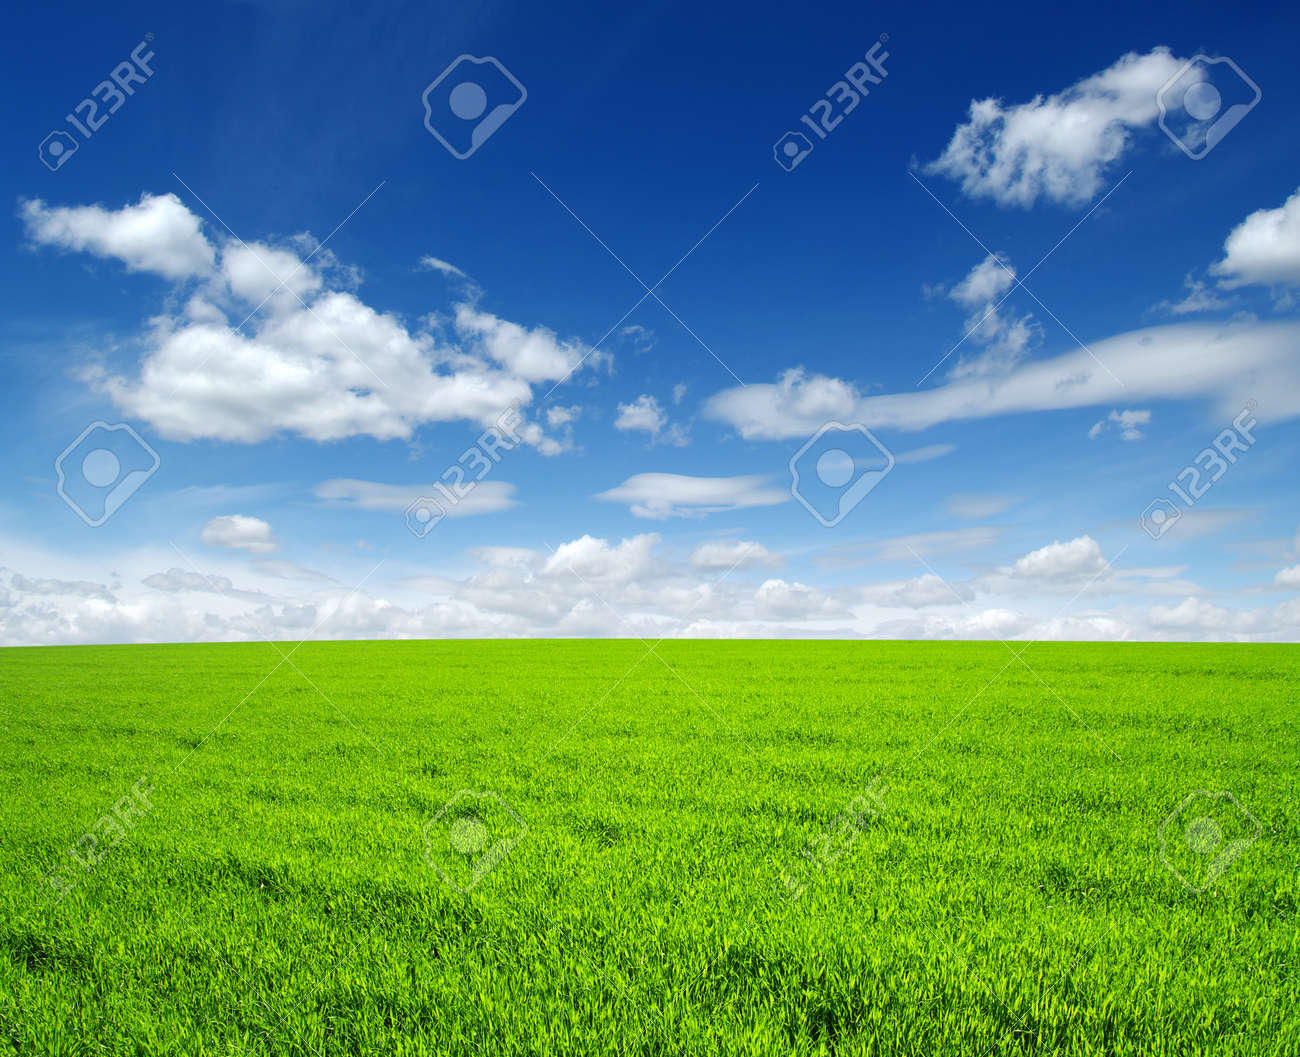 field of green grass and sky - 48653615